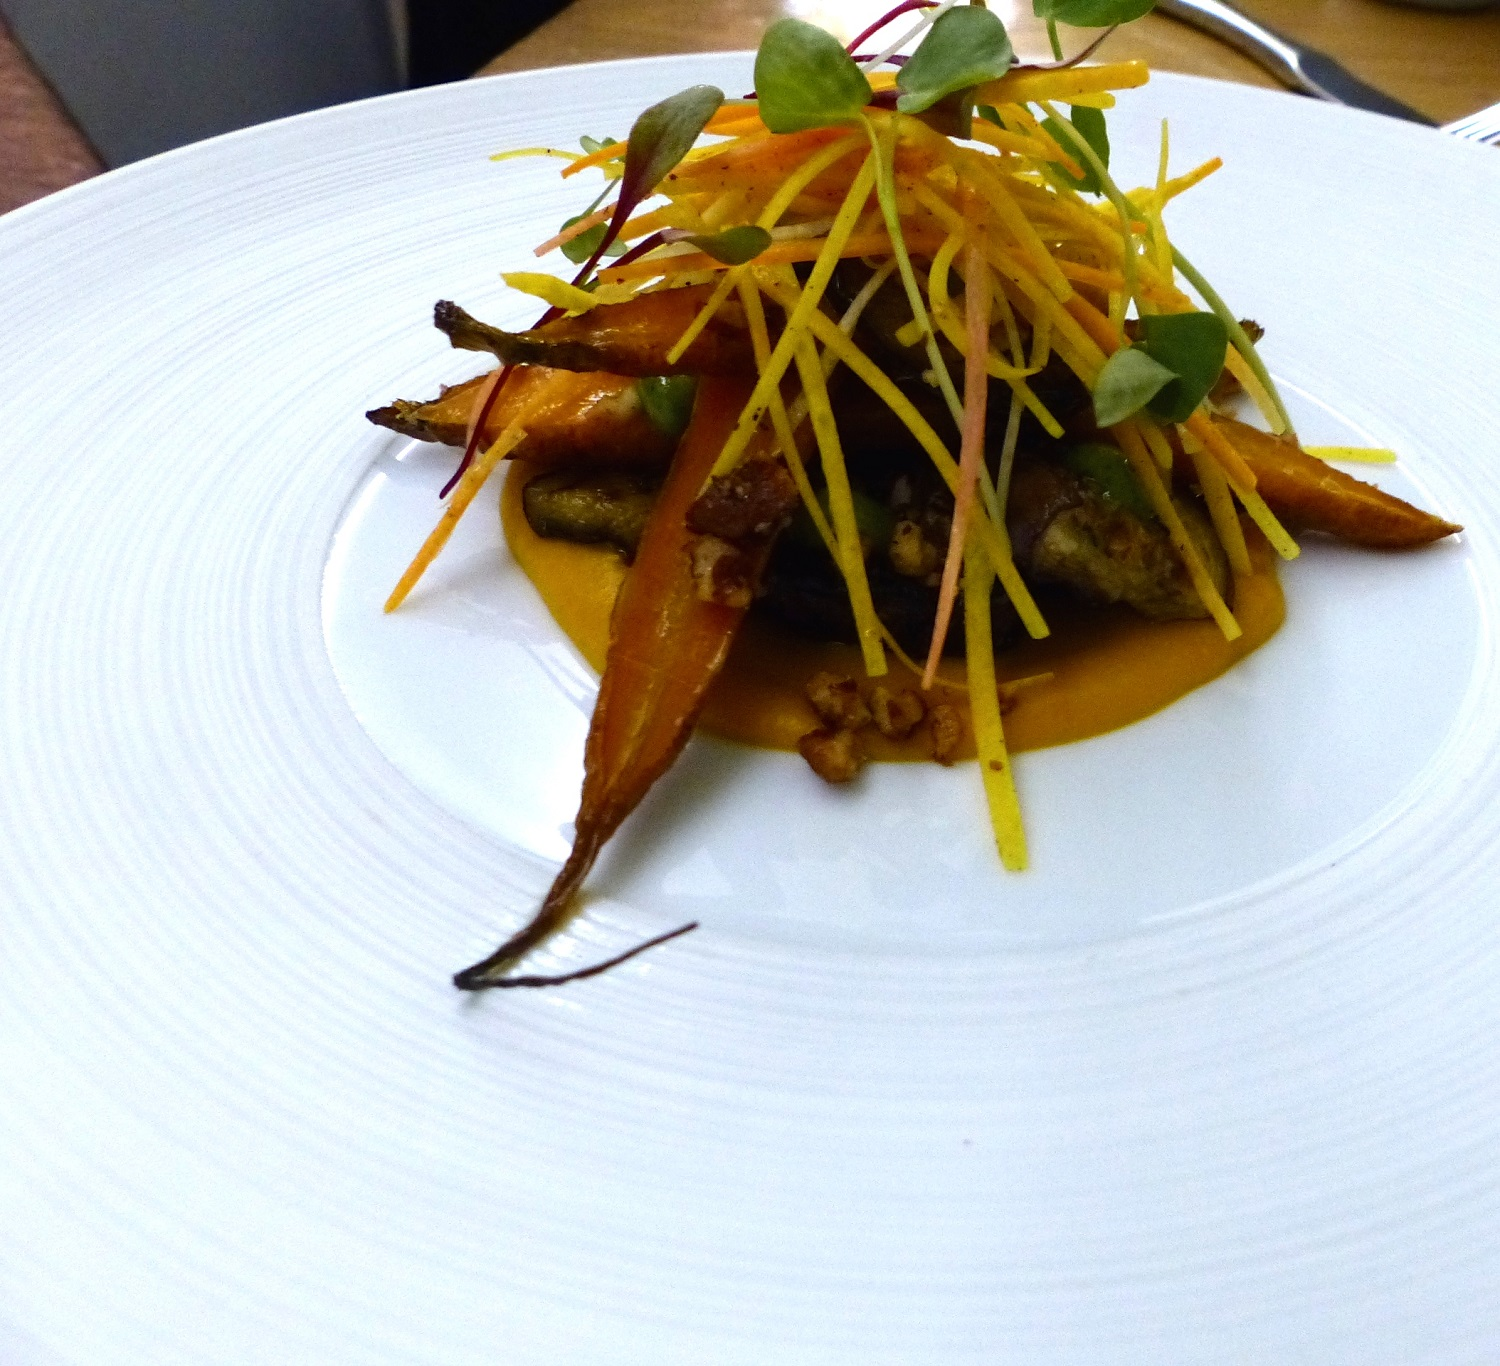 Maureen_Ferguson_Aldea_Restaurant_ROASTED_EGGPLANT_SMOKED_CARROT